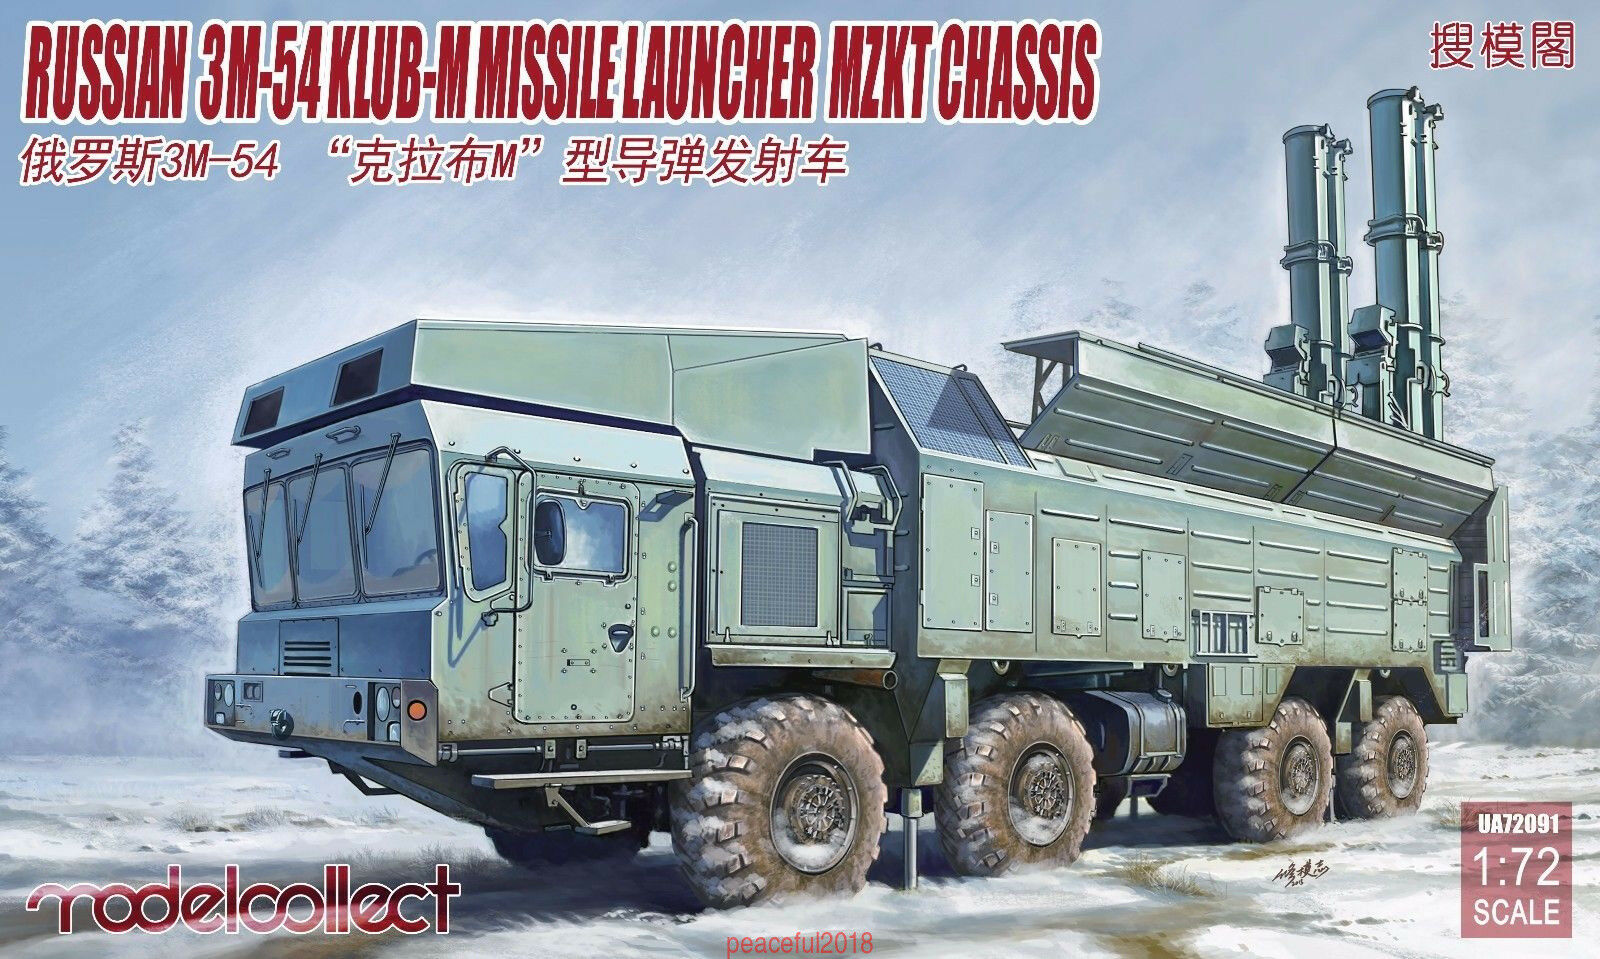 Model Collect 1 72 UA72091 Russian 3M-54 Klub-M MissIle Launcher MZKT Chassis